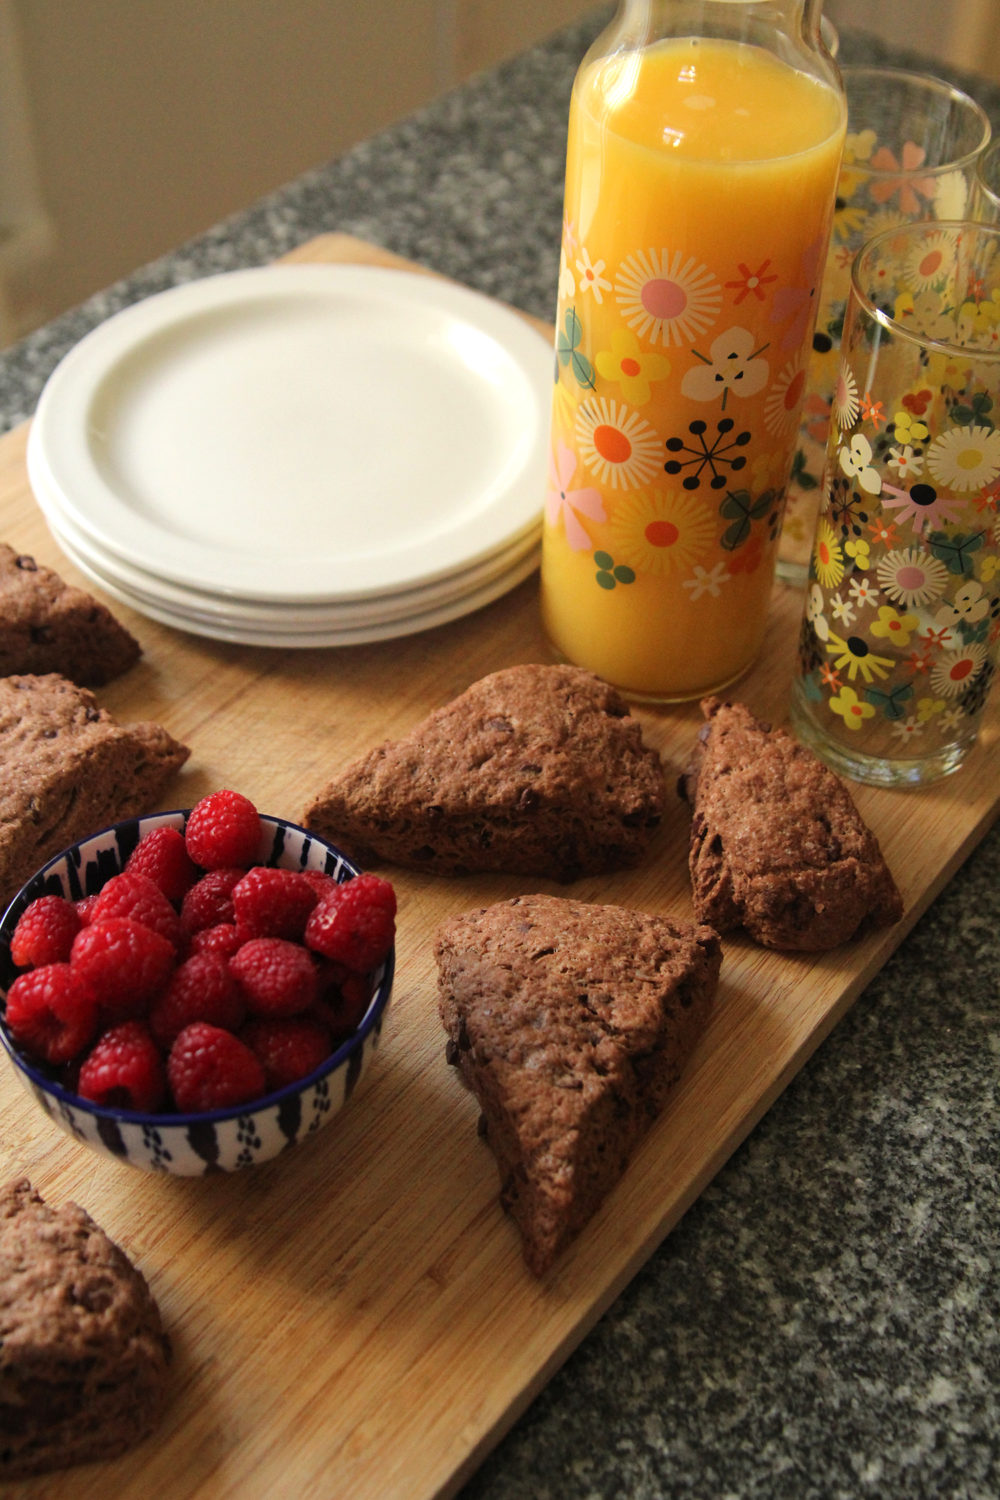 double chocolate scones recipe shown with a glass pitcher of orange juice, a bowl of raspberries and a stock of white plates on a wooden cutting board.